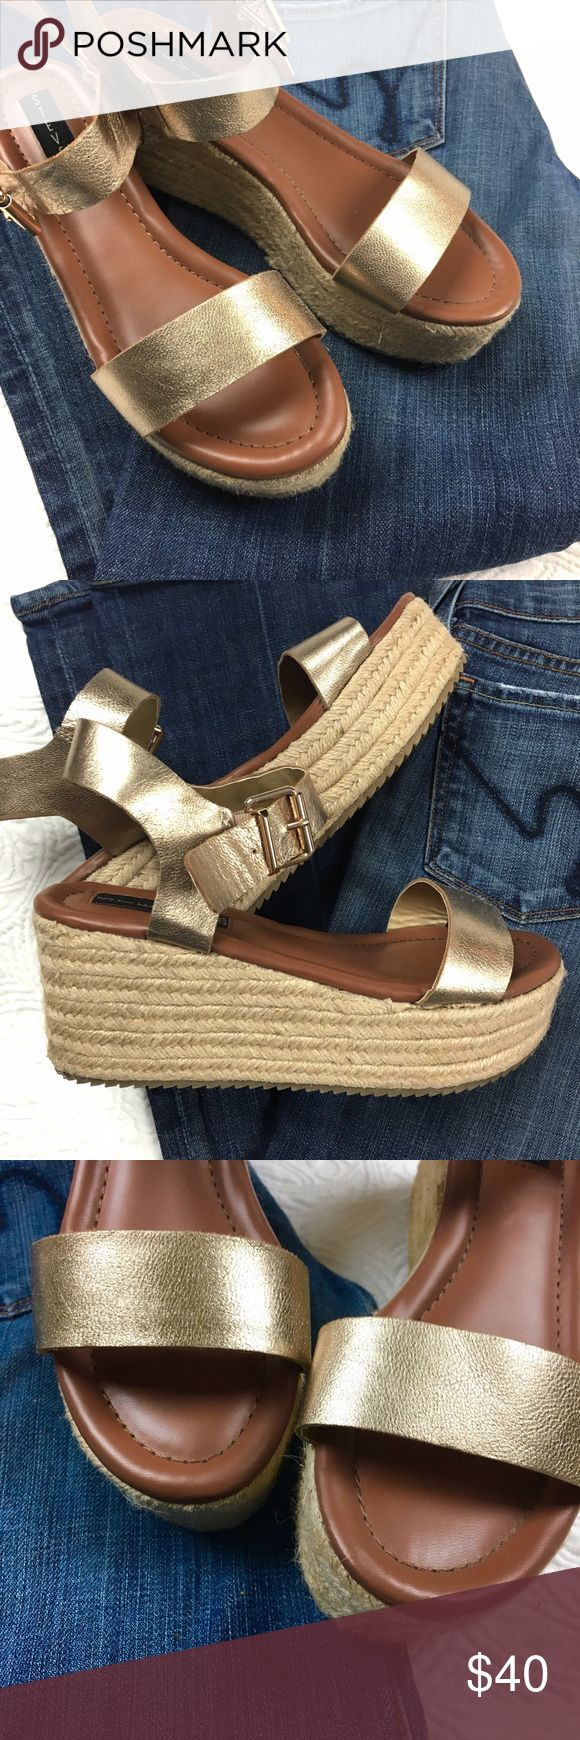 """STEVEN Sabbie Leather Espadrille STEVEN by Steve Madden Golde Sabbie leather Platform Espadrille in excellent condition. Worn Once briefly. 2.75"""" Hell 2"""" Platform Extremely Comfortable and Stylish Shoe. True to size. no trades pls Steven by Steve Madden Shoes Espadrilles"""